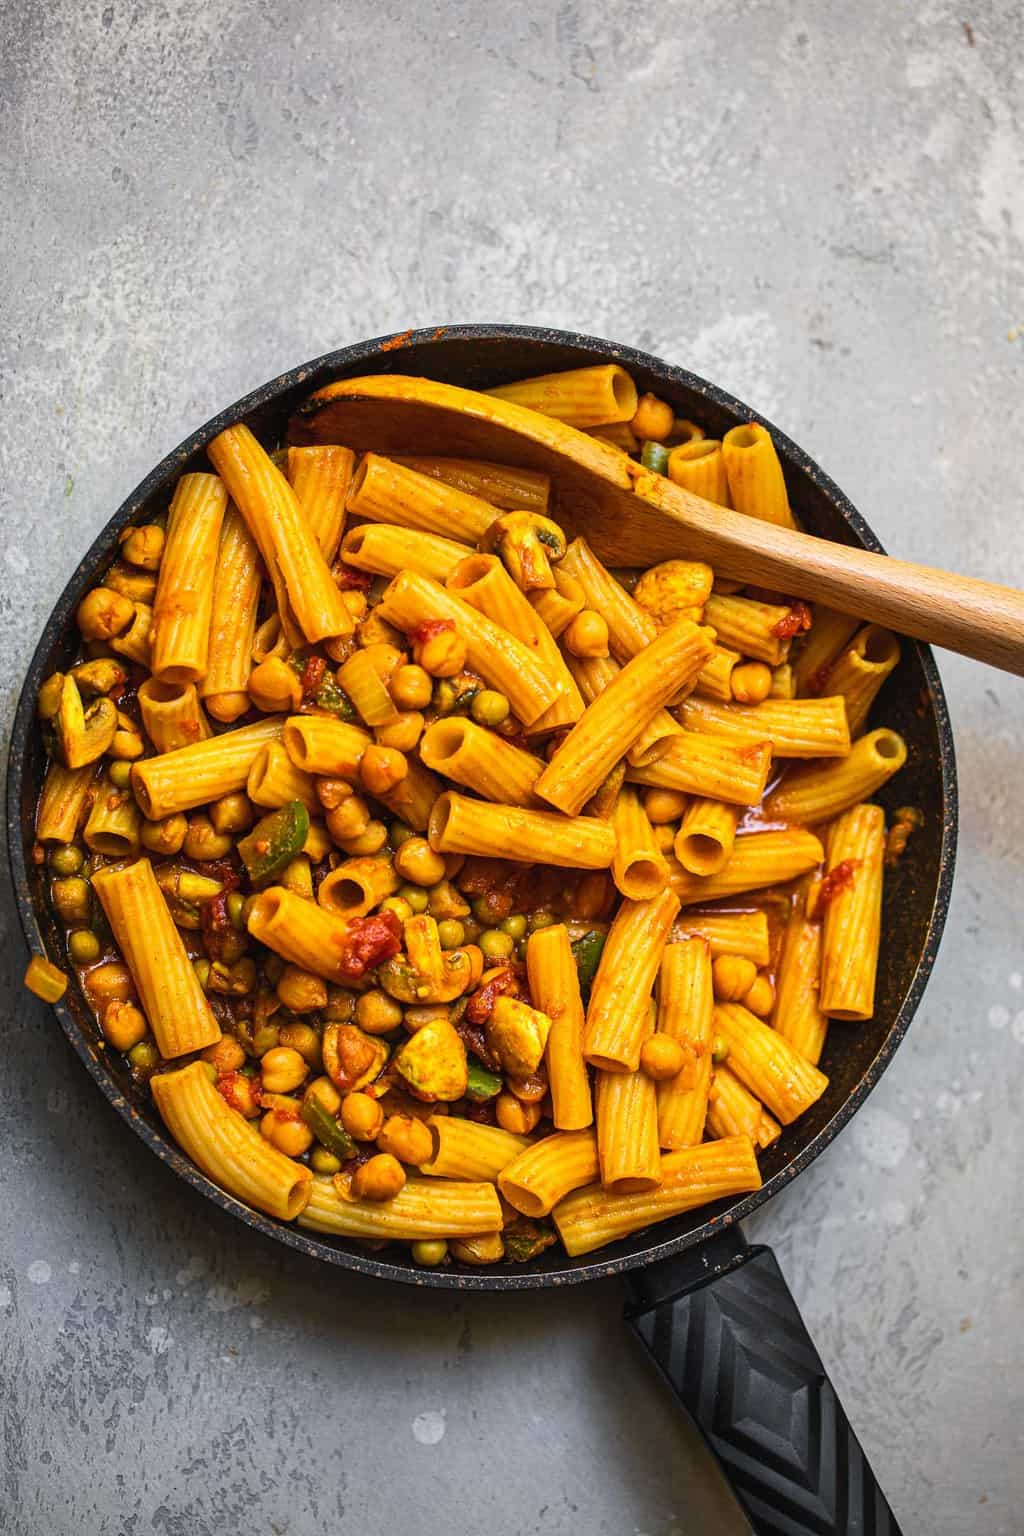 Pasta with chickpeas and mushrooms in a frying pan